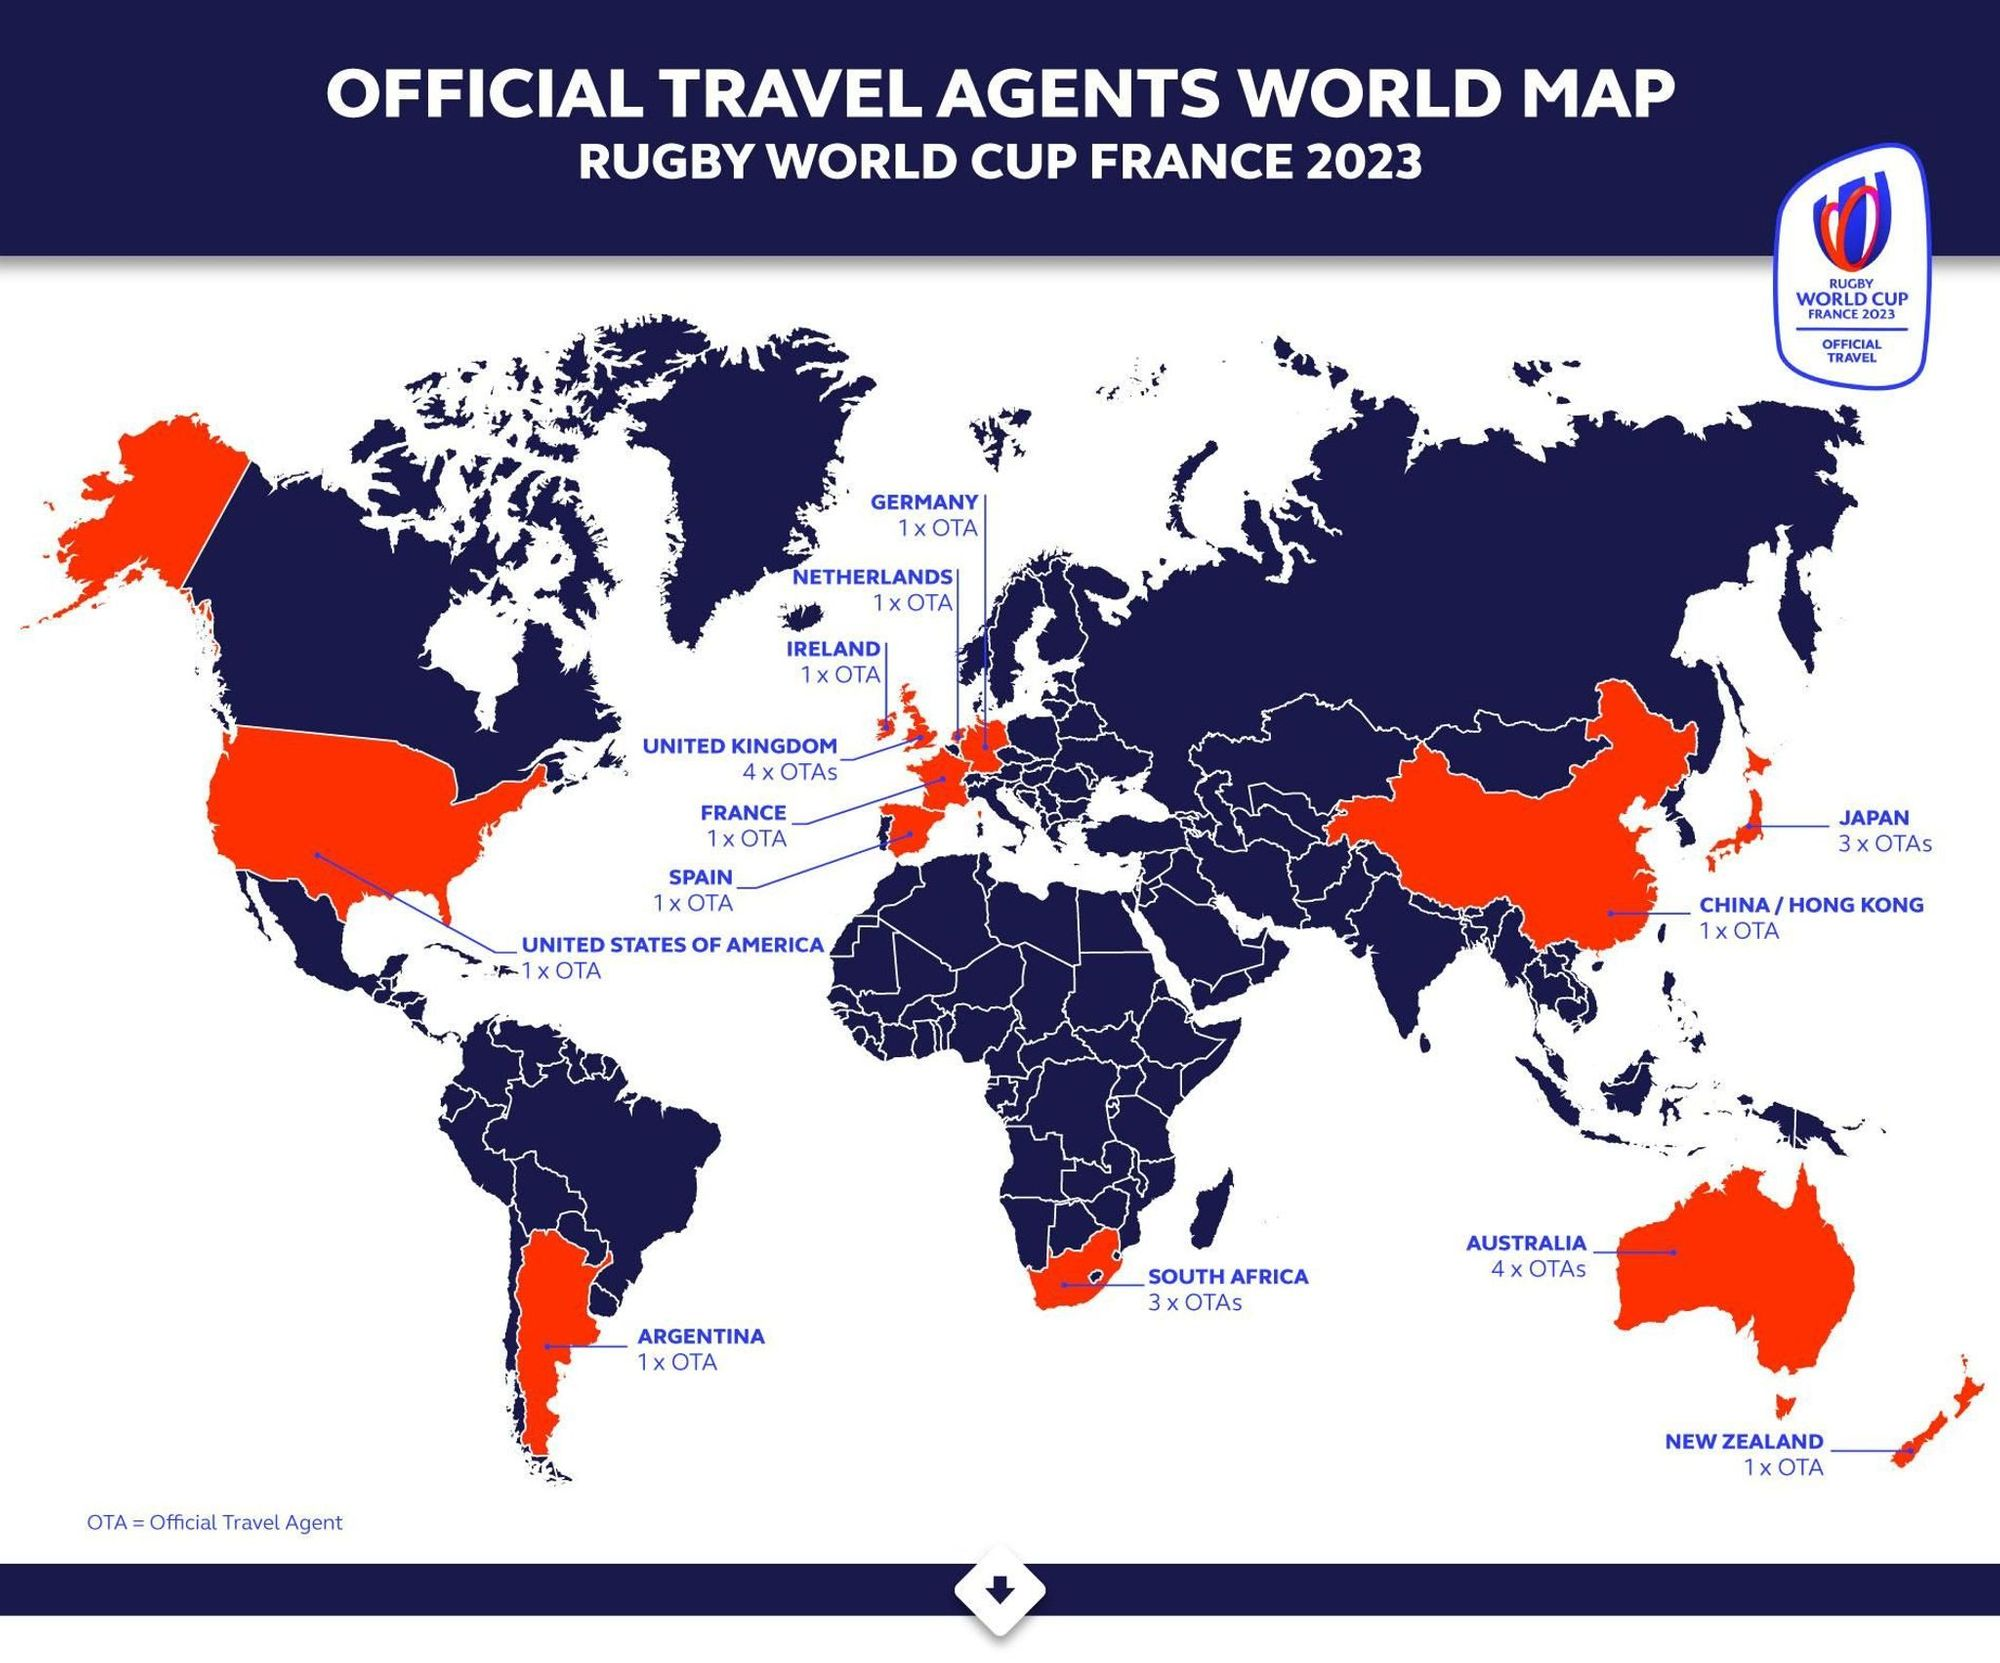 Rugby World Cup reveal ambitious plans with Official Travel Agency launch